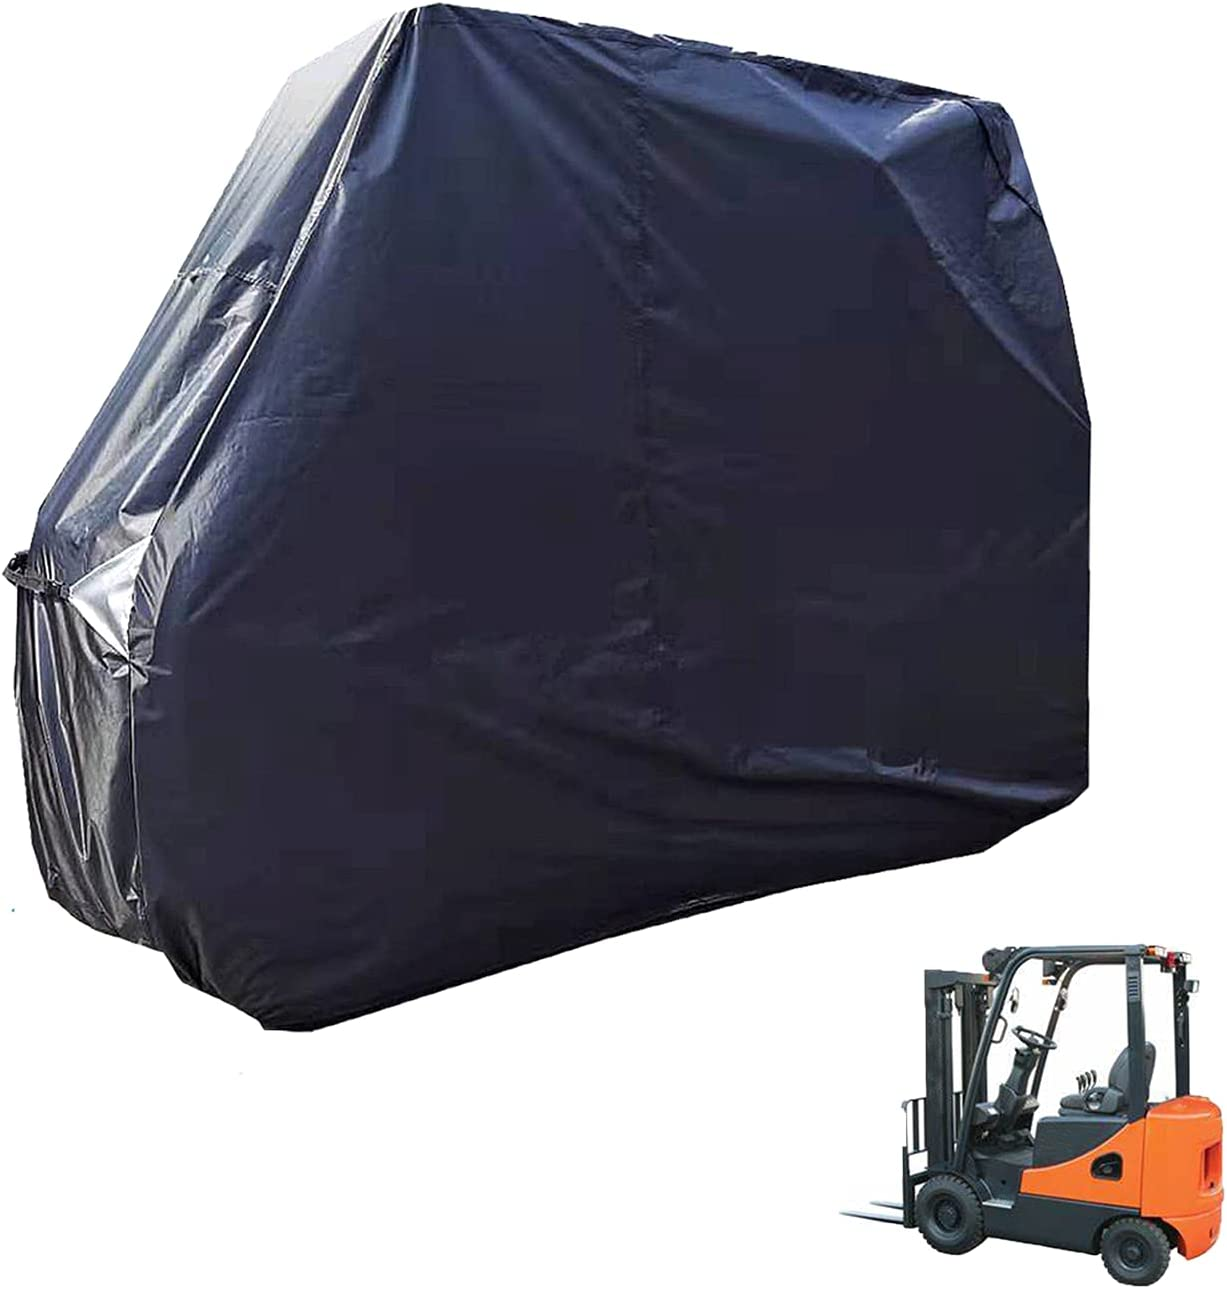 JC Cheap mail order specialty store Topics on TV Forklift Cover Accessories Heavy Duty 420D